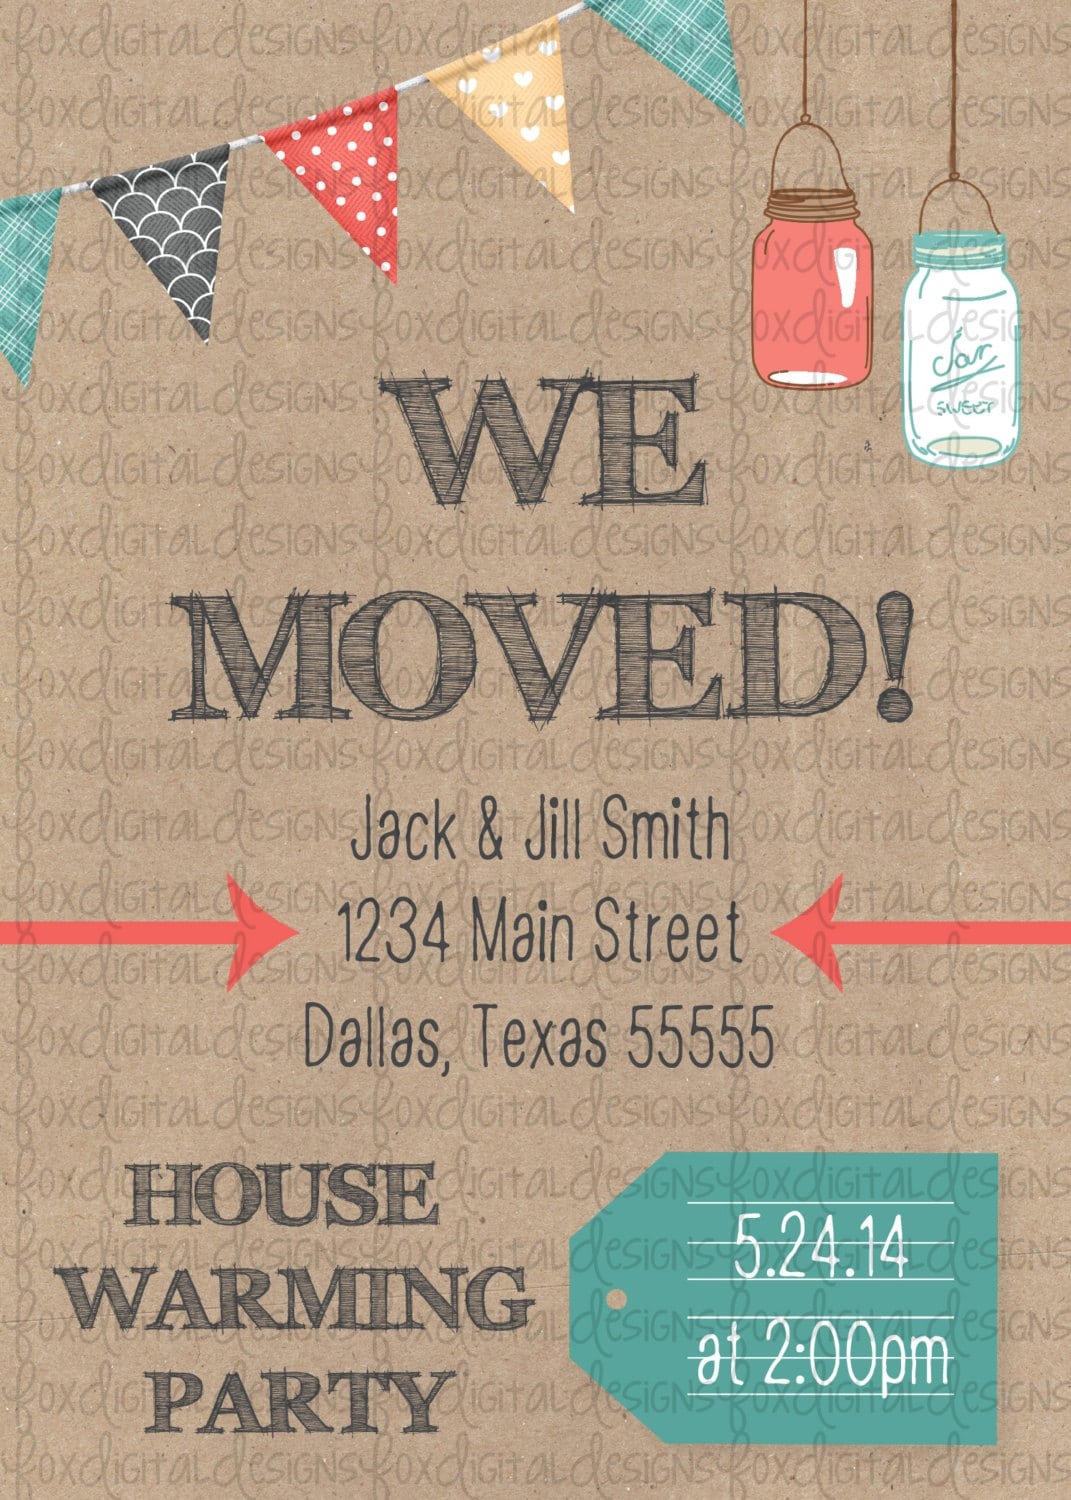 Chevron Moving Announcement & House Warming Party Invitation